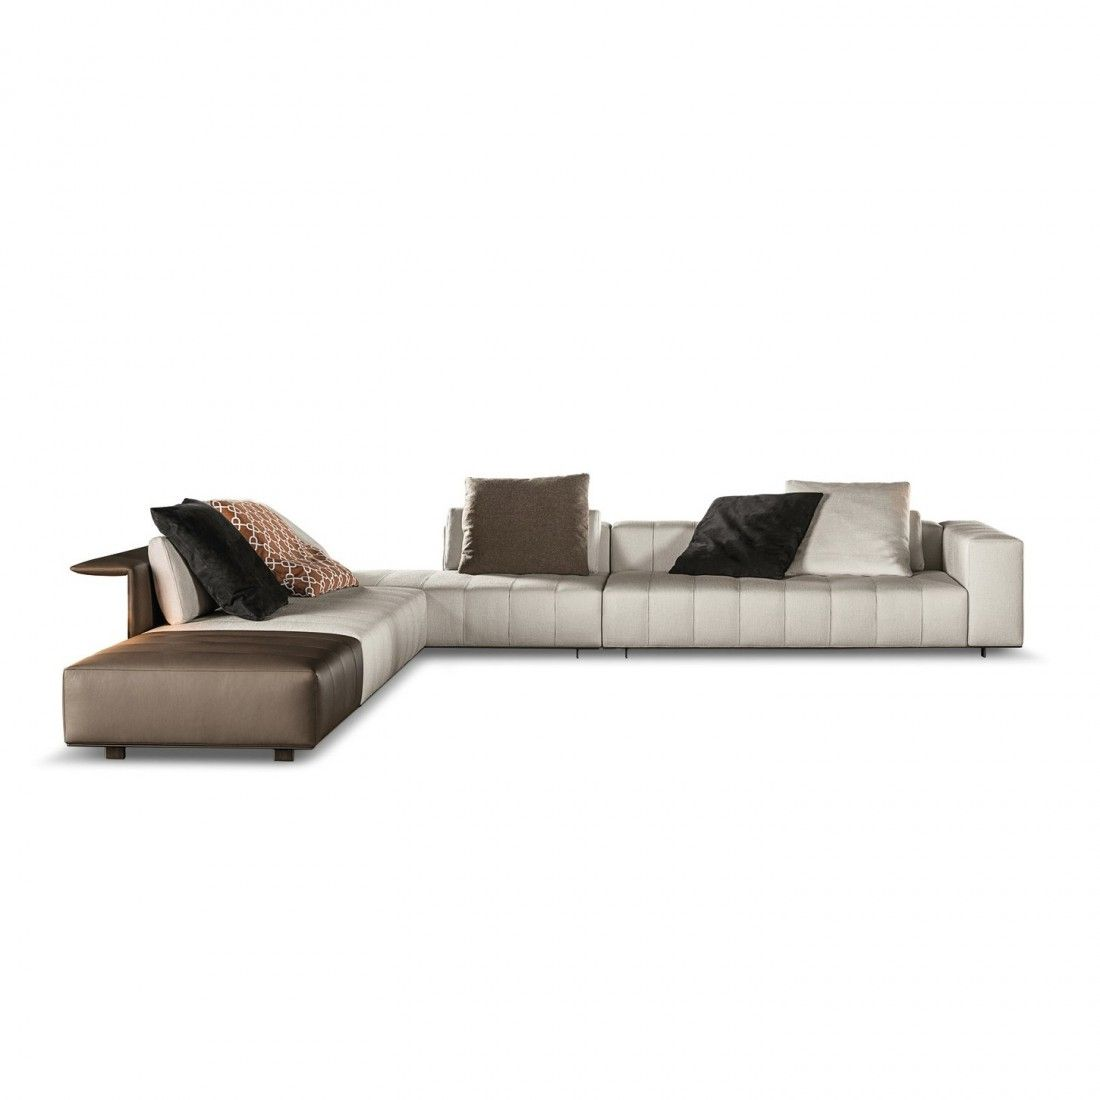 Freeman Tailor Minotti Minotti Sofa Chaise Lounge Sofa Sofa